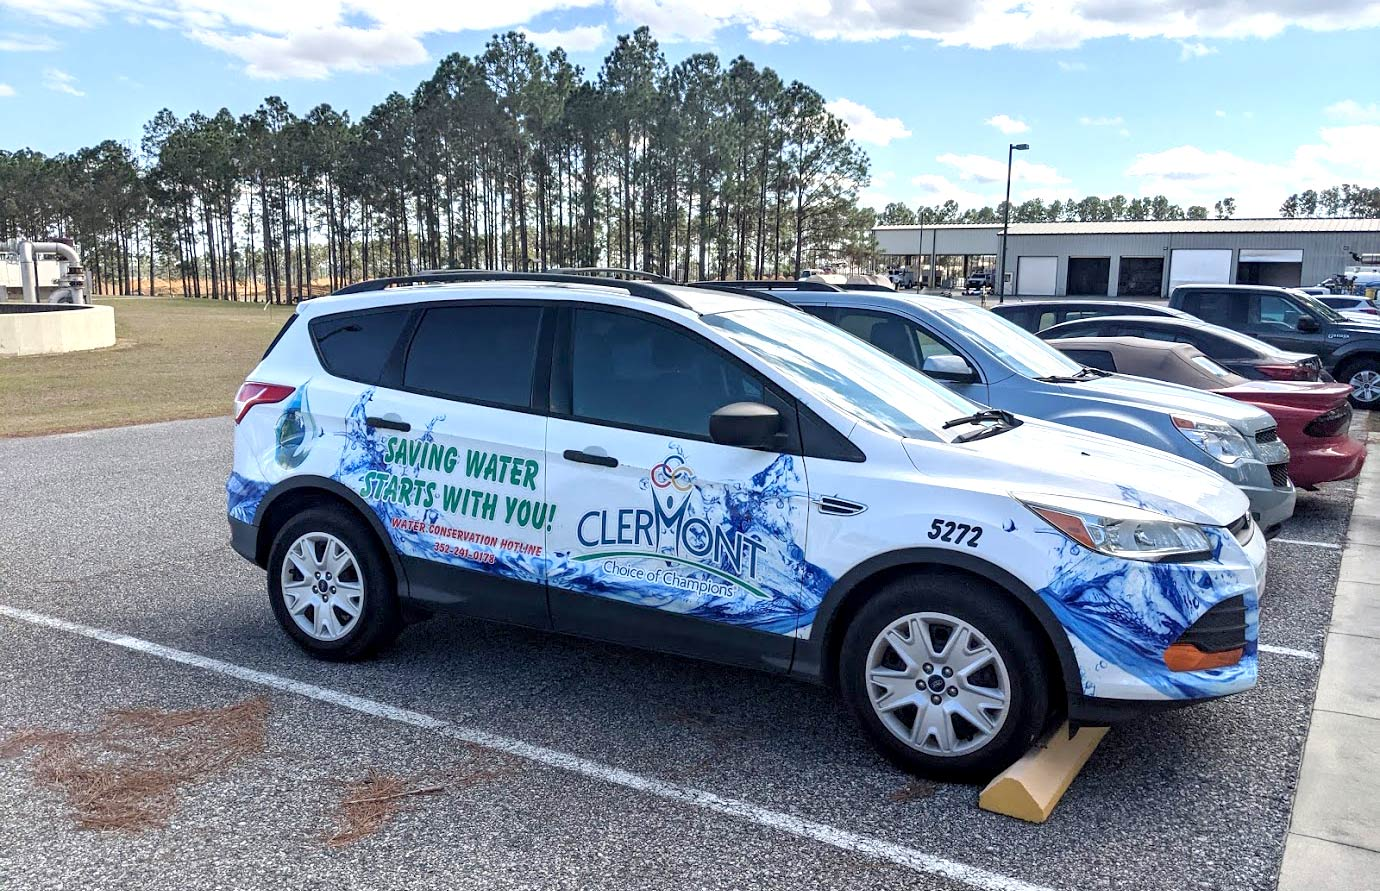 The Clermont Utilities vehicle with a colorful car wrap